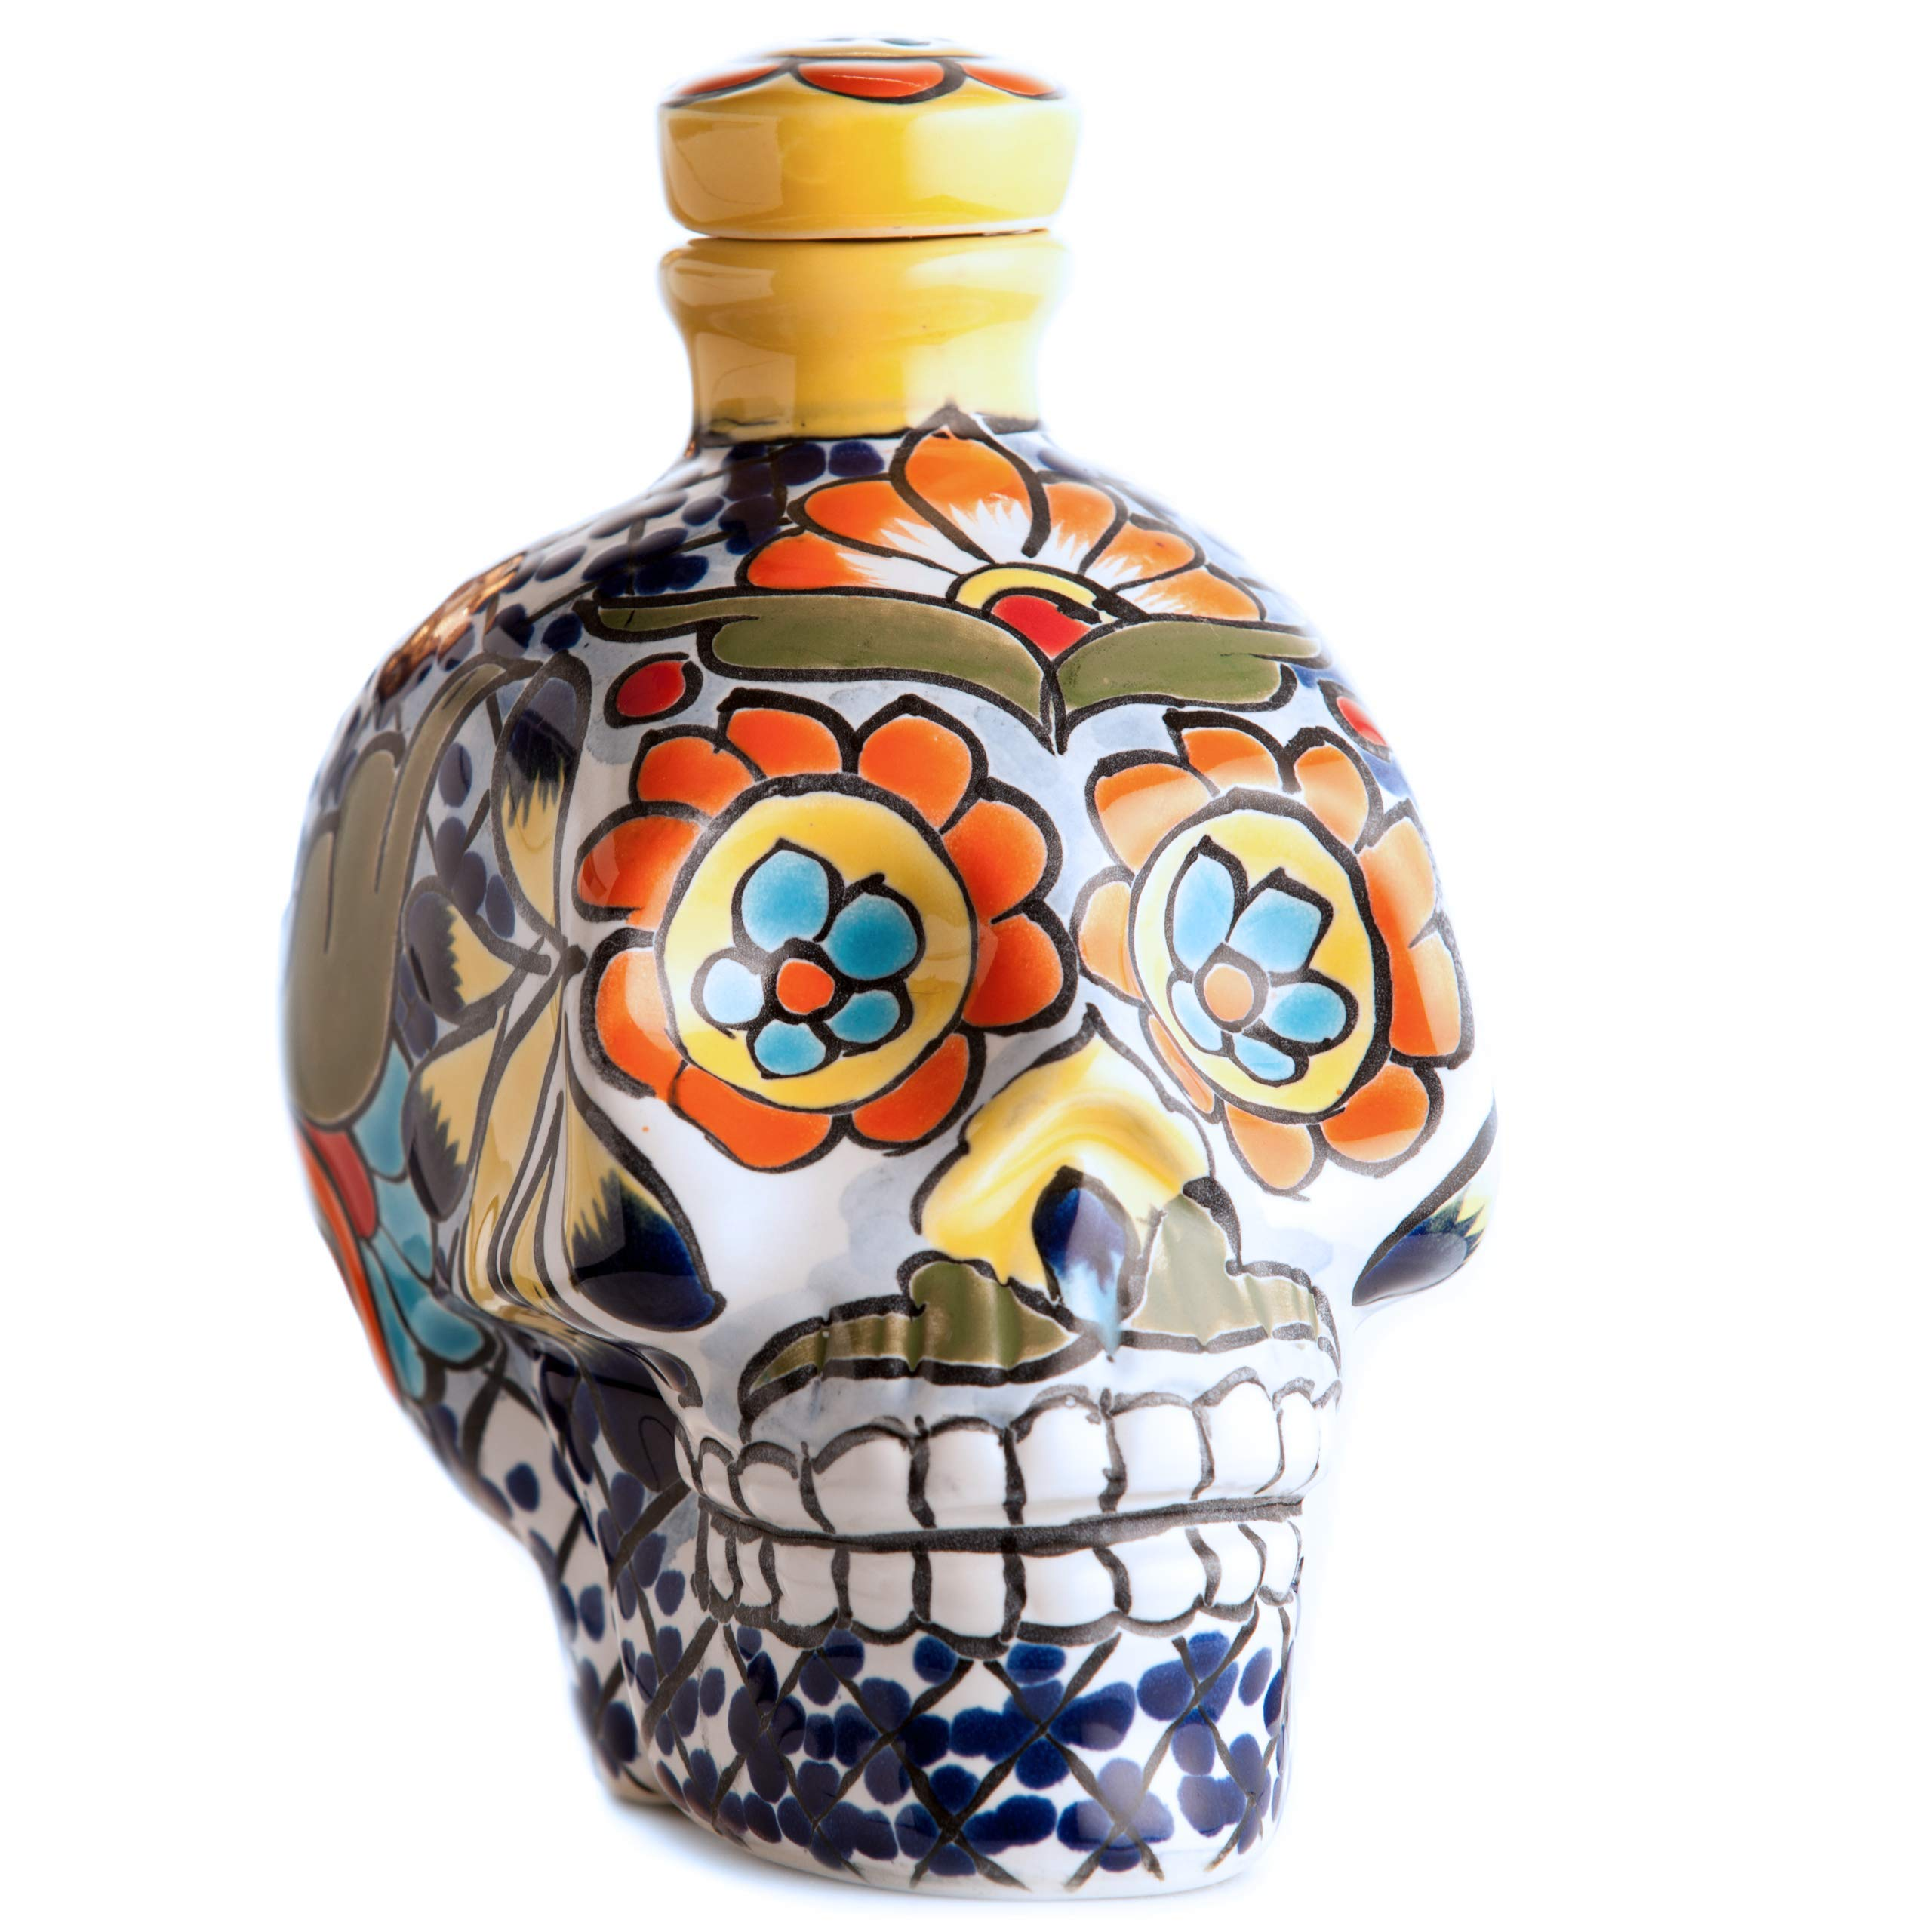 Artmmex82 Skull Ceramic Bottle Decanter 20oz capacity, liquor bottle, handcrafted bottle, hand painted decanter, skull bottle, ceramic bottle, ceramic. (blue-yellow)